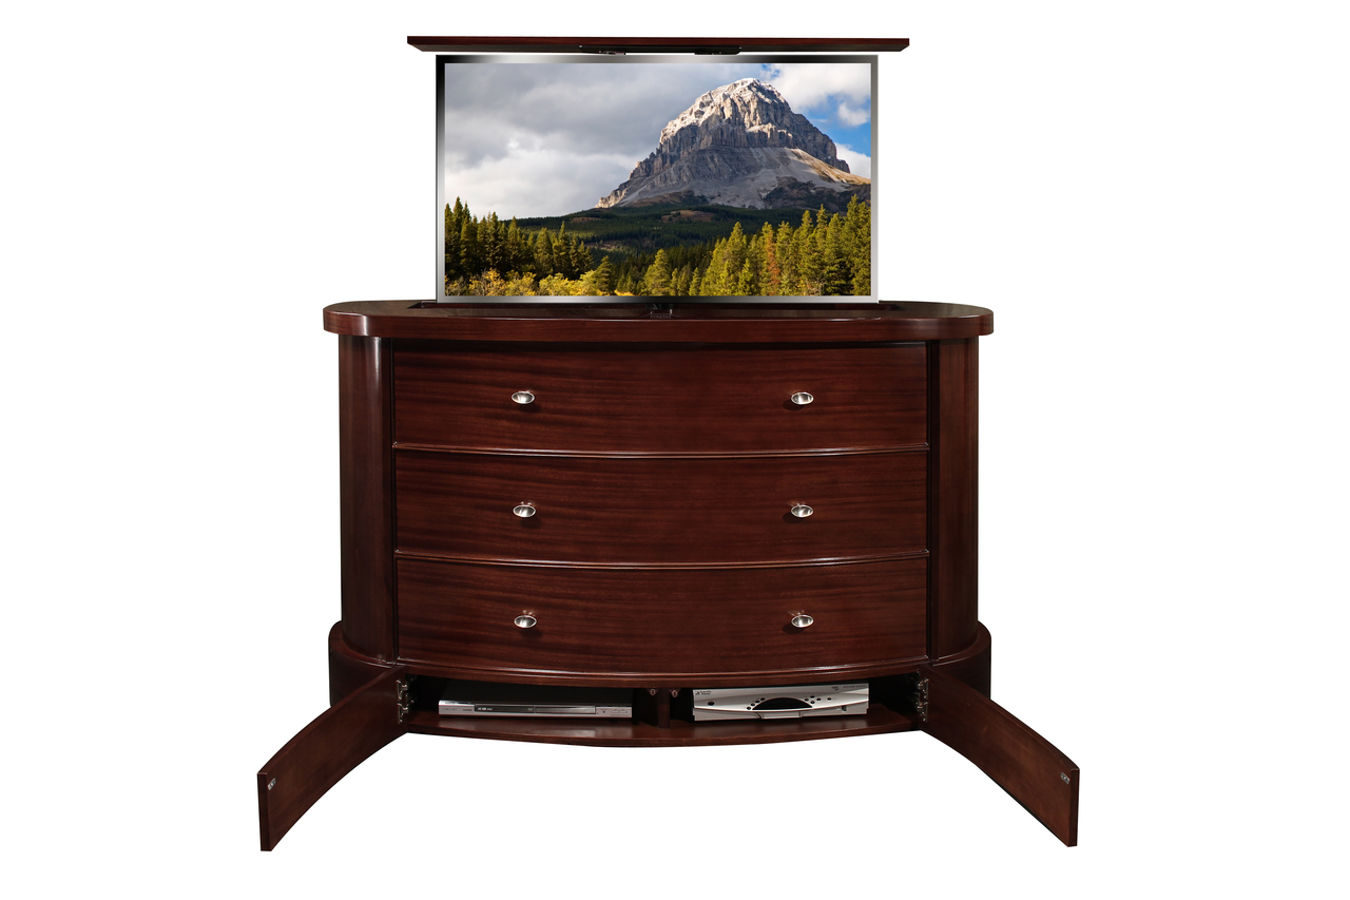 Fitch Ribbonwood Plasma TV Lift Cabinet Furniture Has A Component Section  That Is Located On The